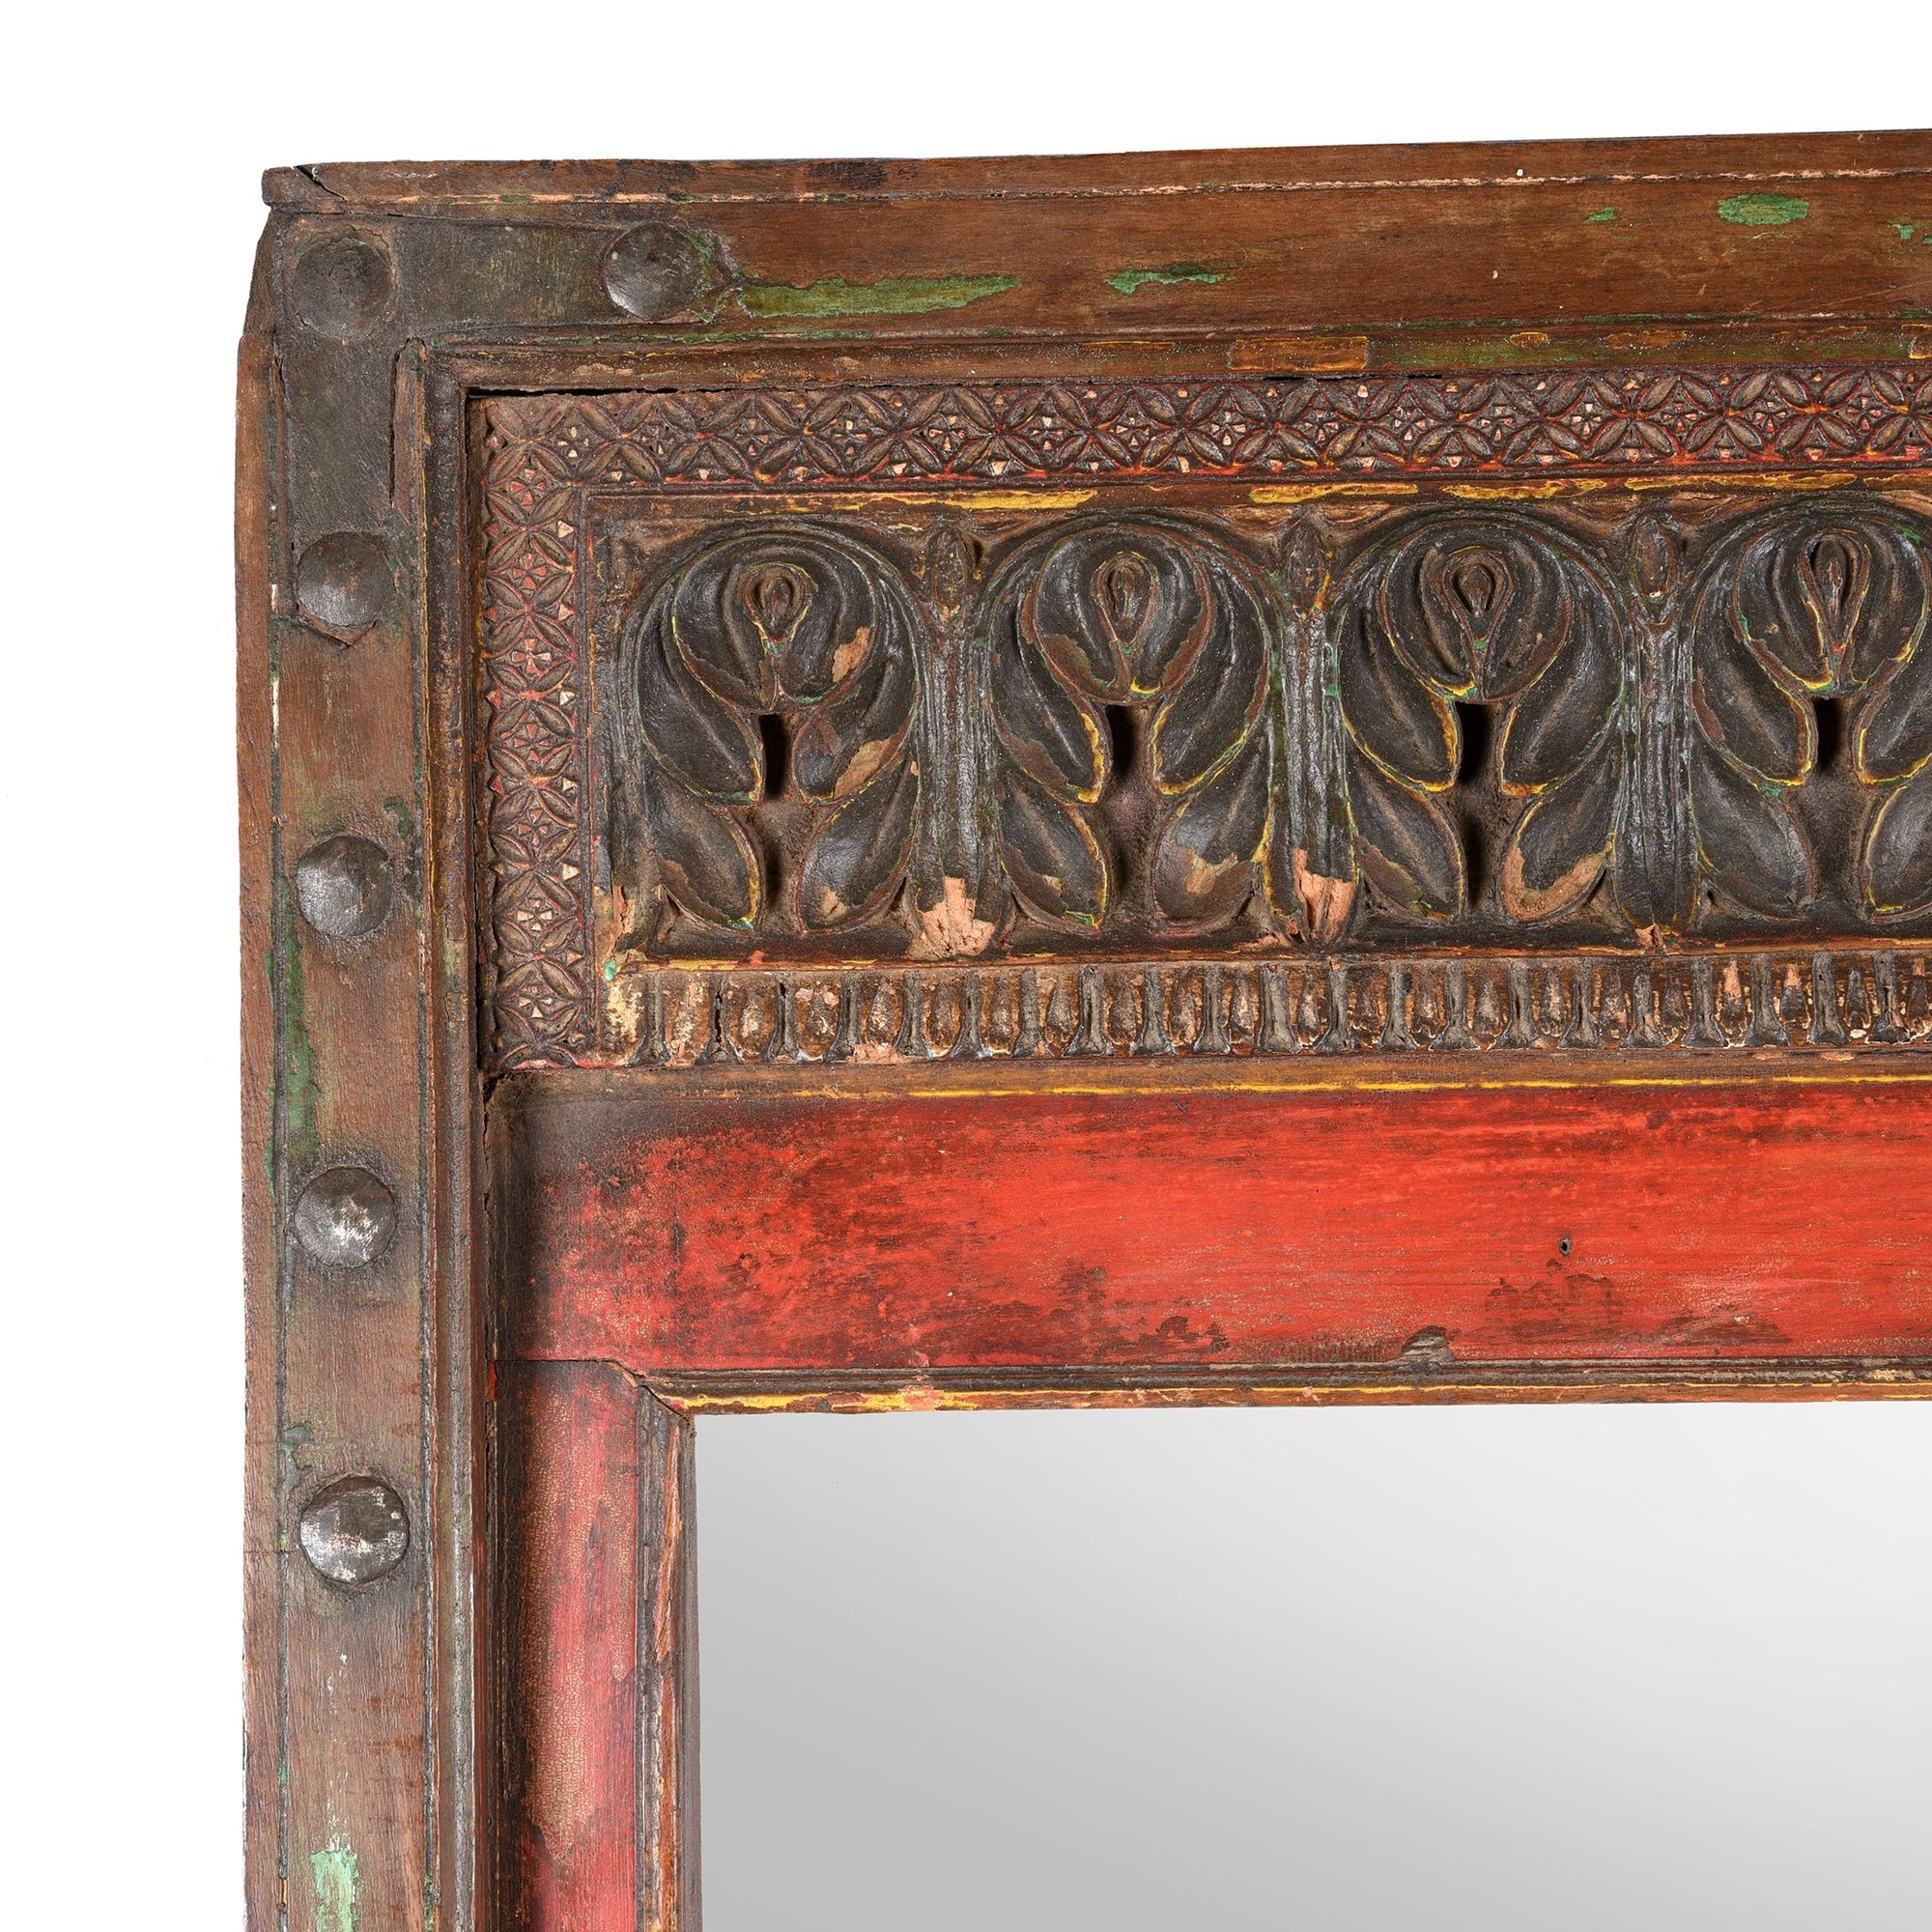 Painted Indian Mirror From Bikaner - 19thC